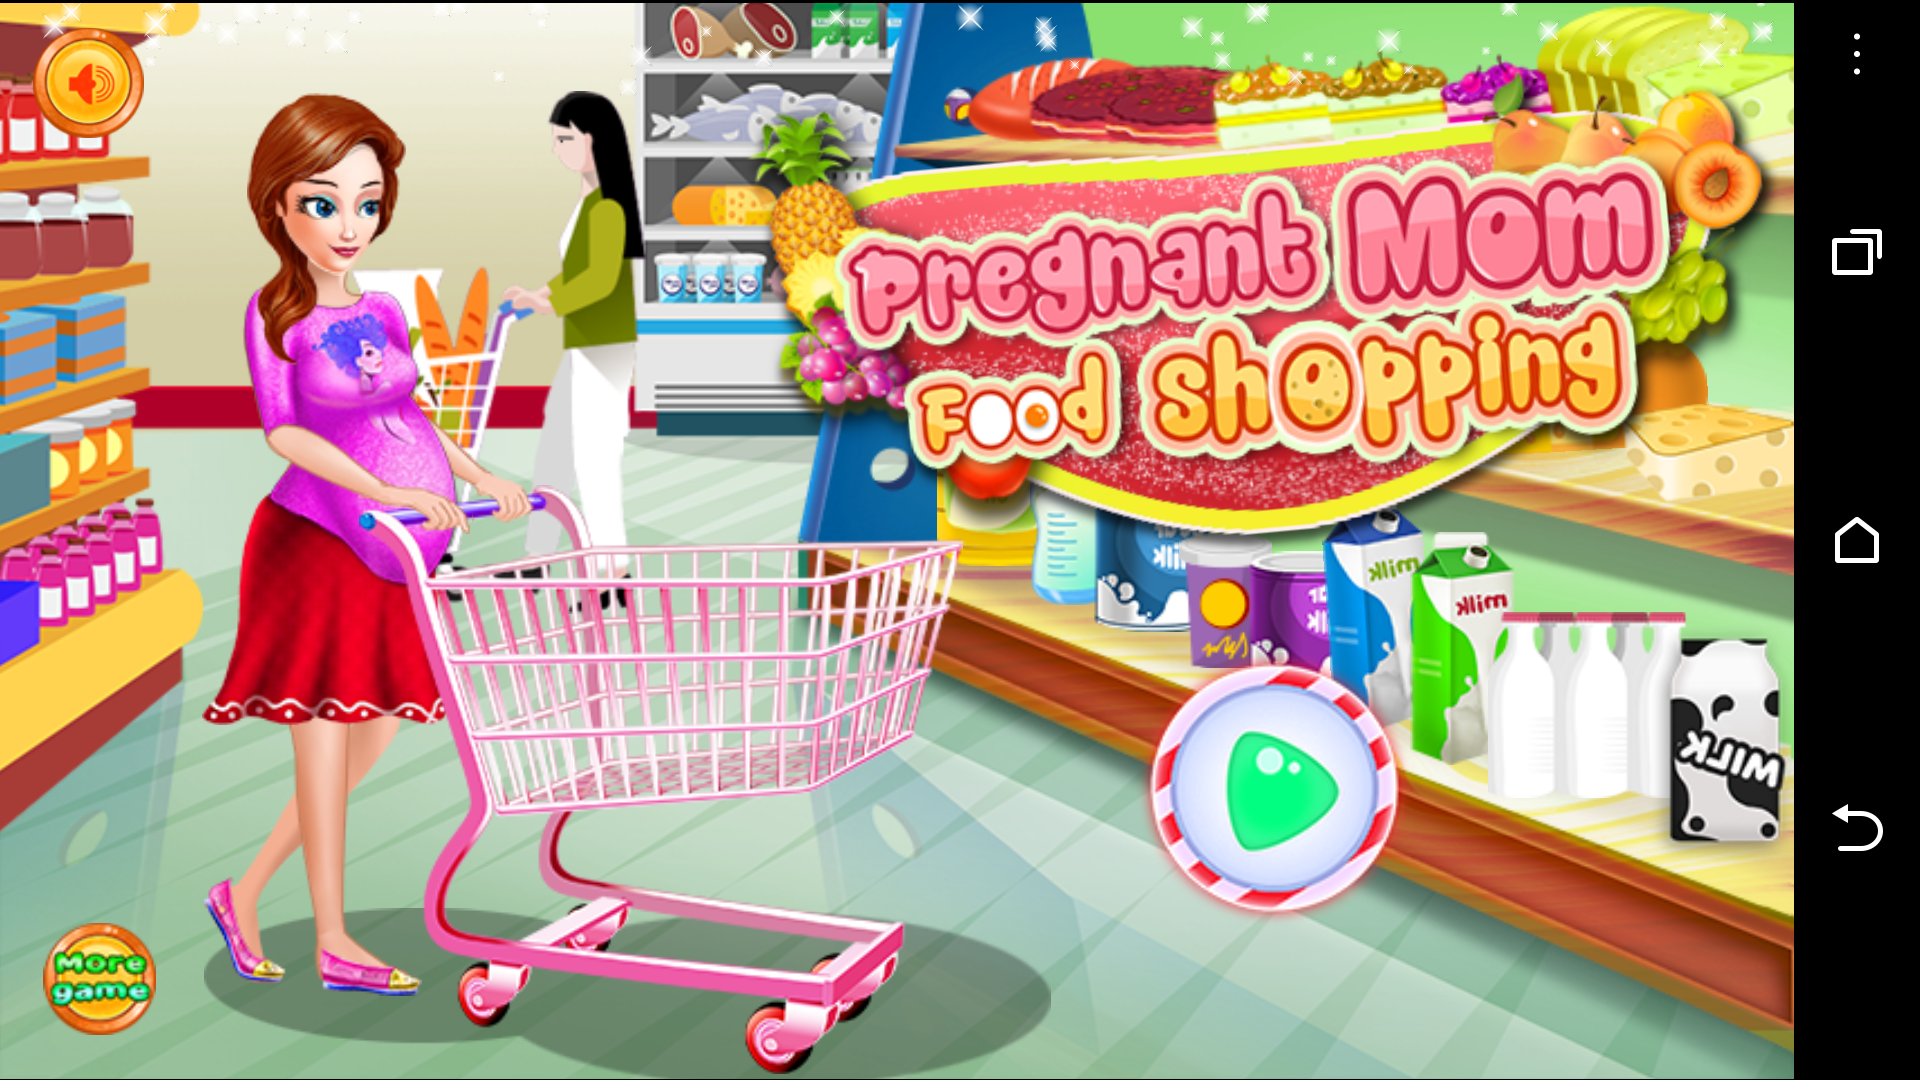 Pregnant Mom Food Shopping, bxapps Studio, 2015